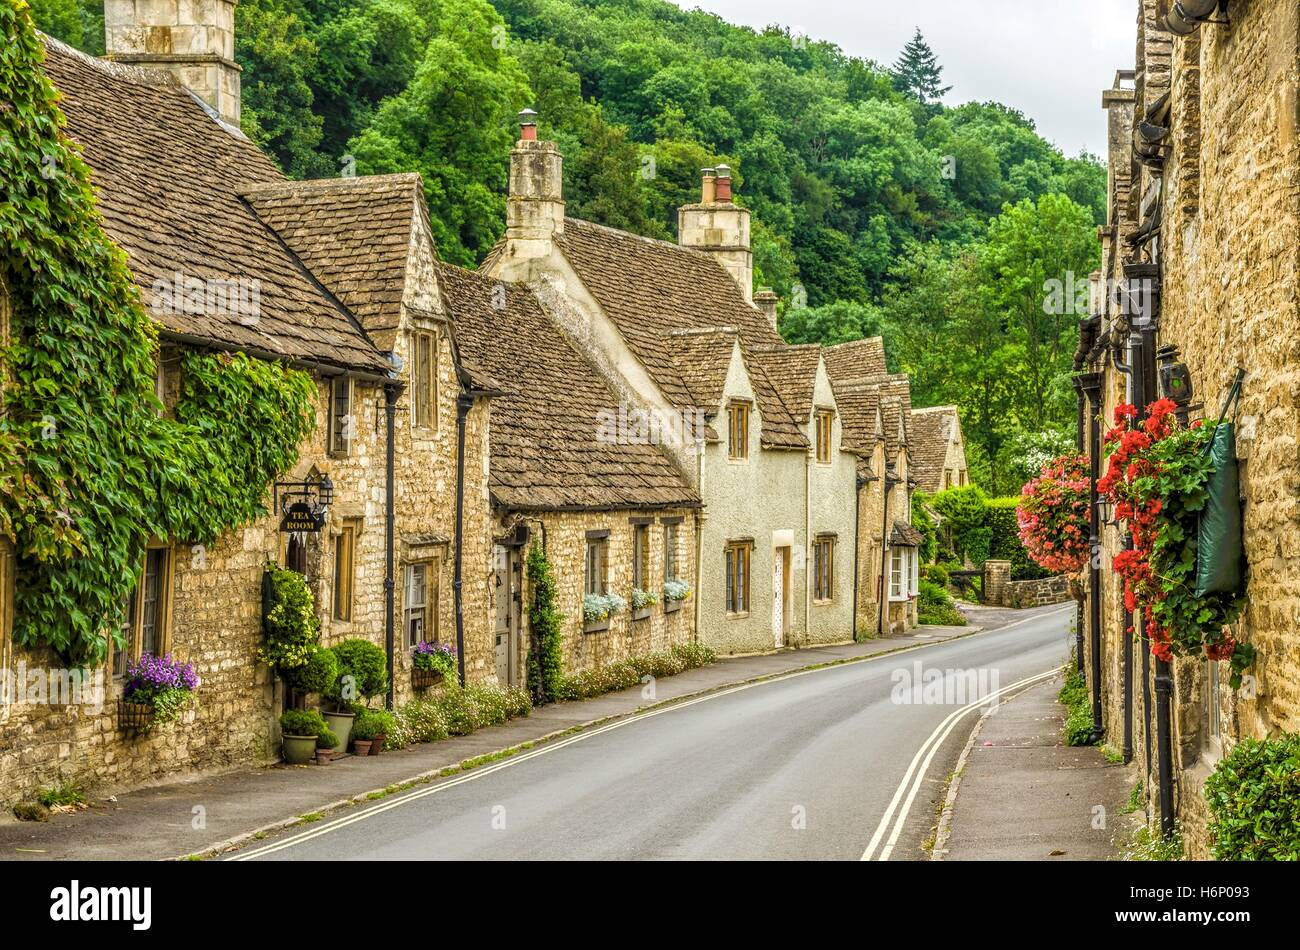 Village of Castle Combe - Stock Image